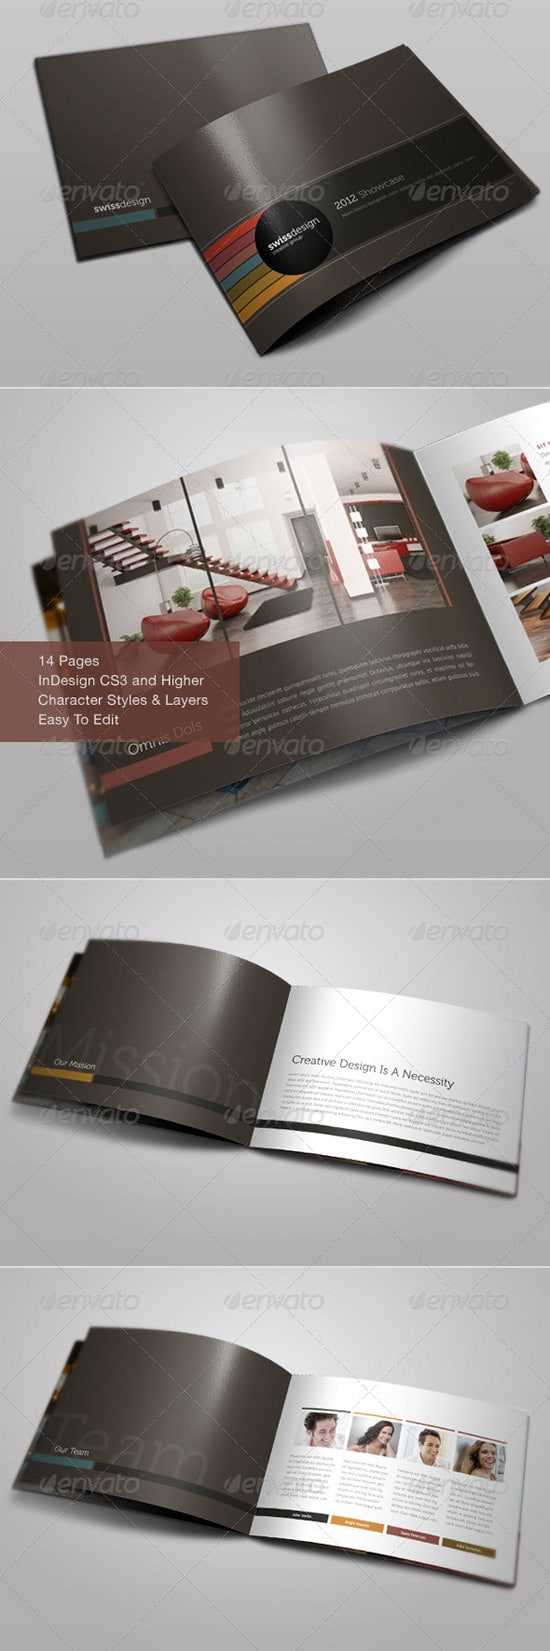 Print Templates - Bifold Brochure | Volume 5